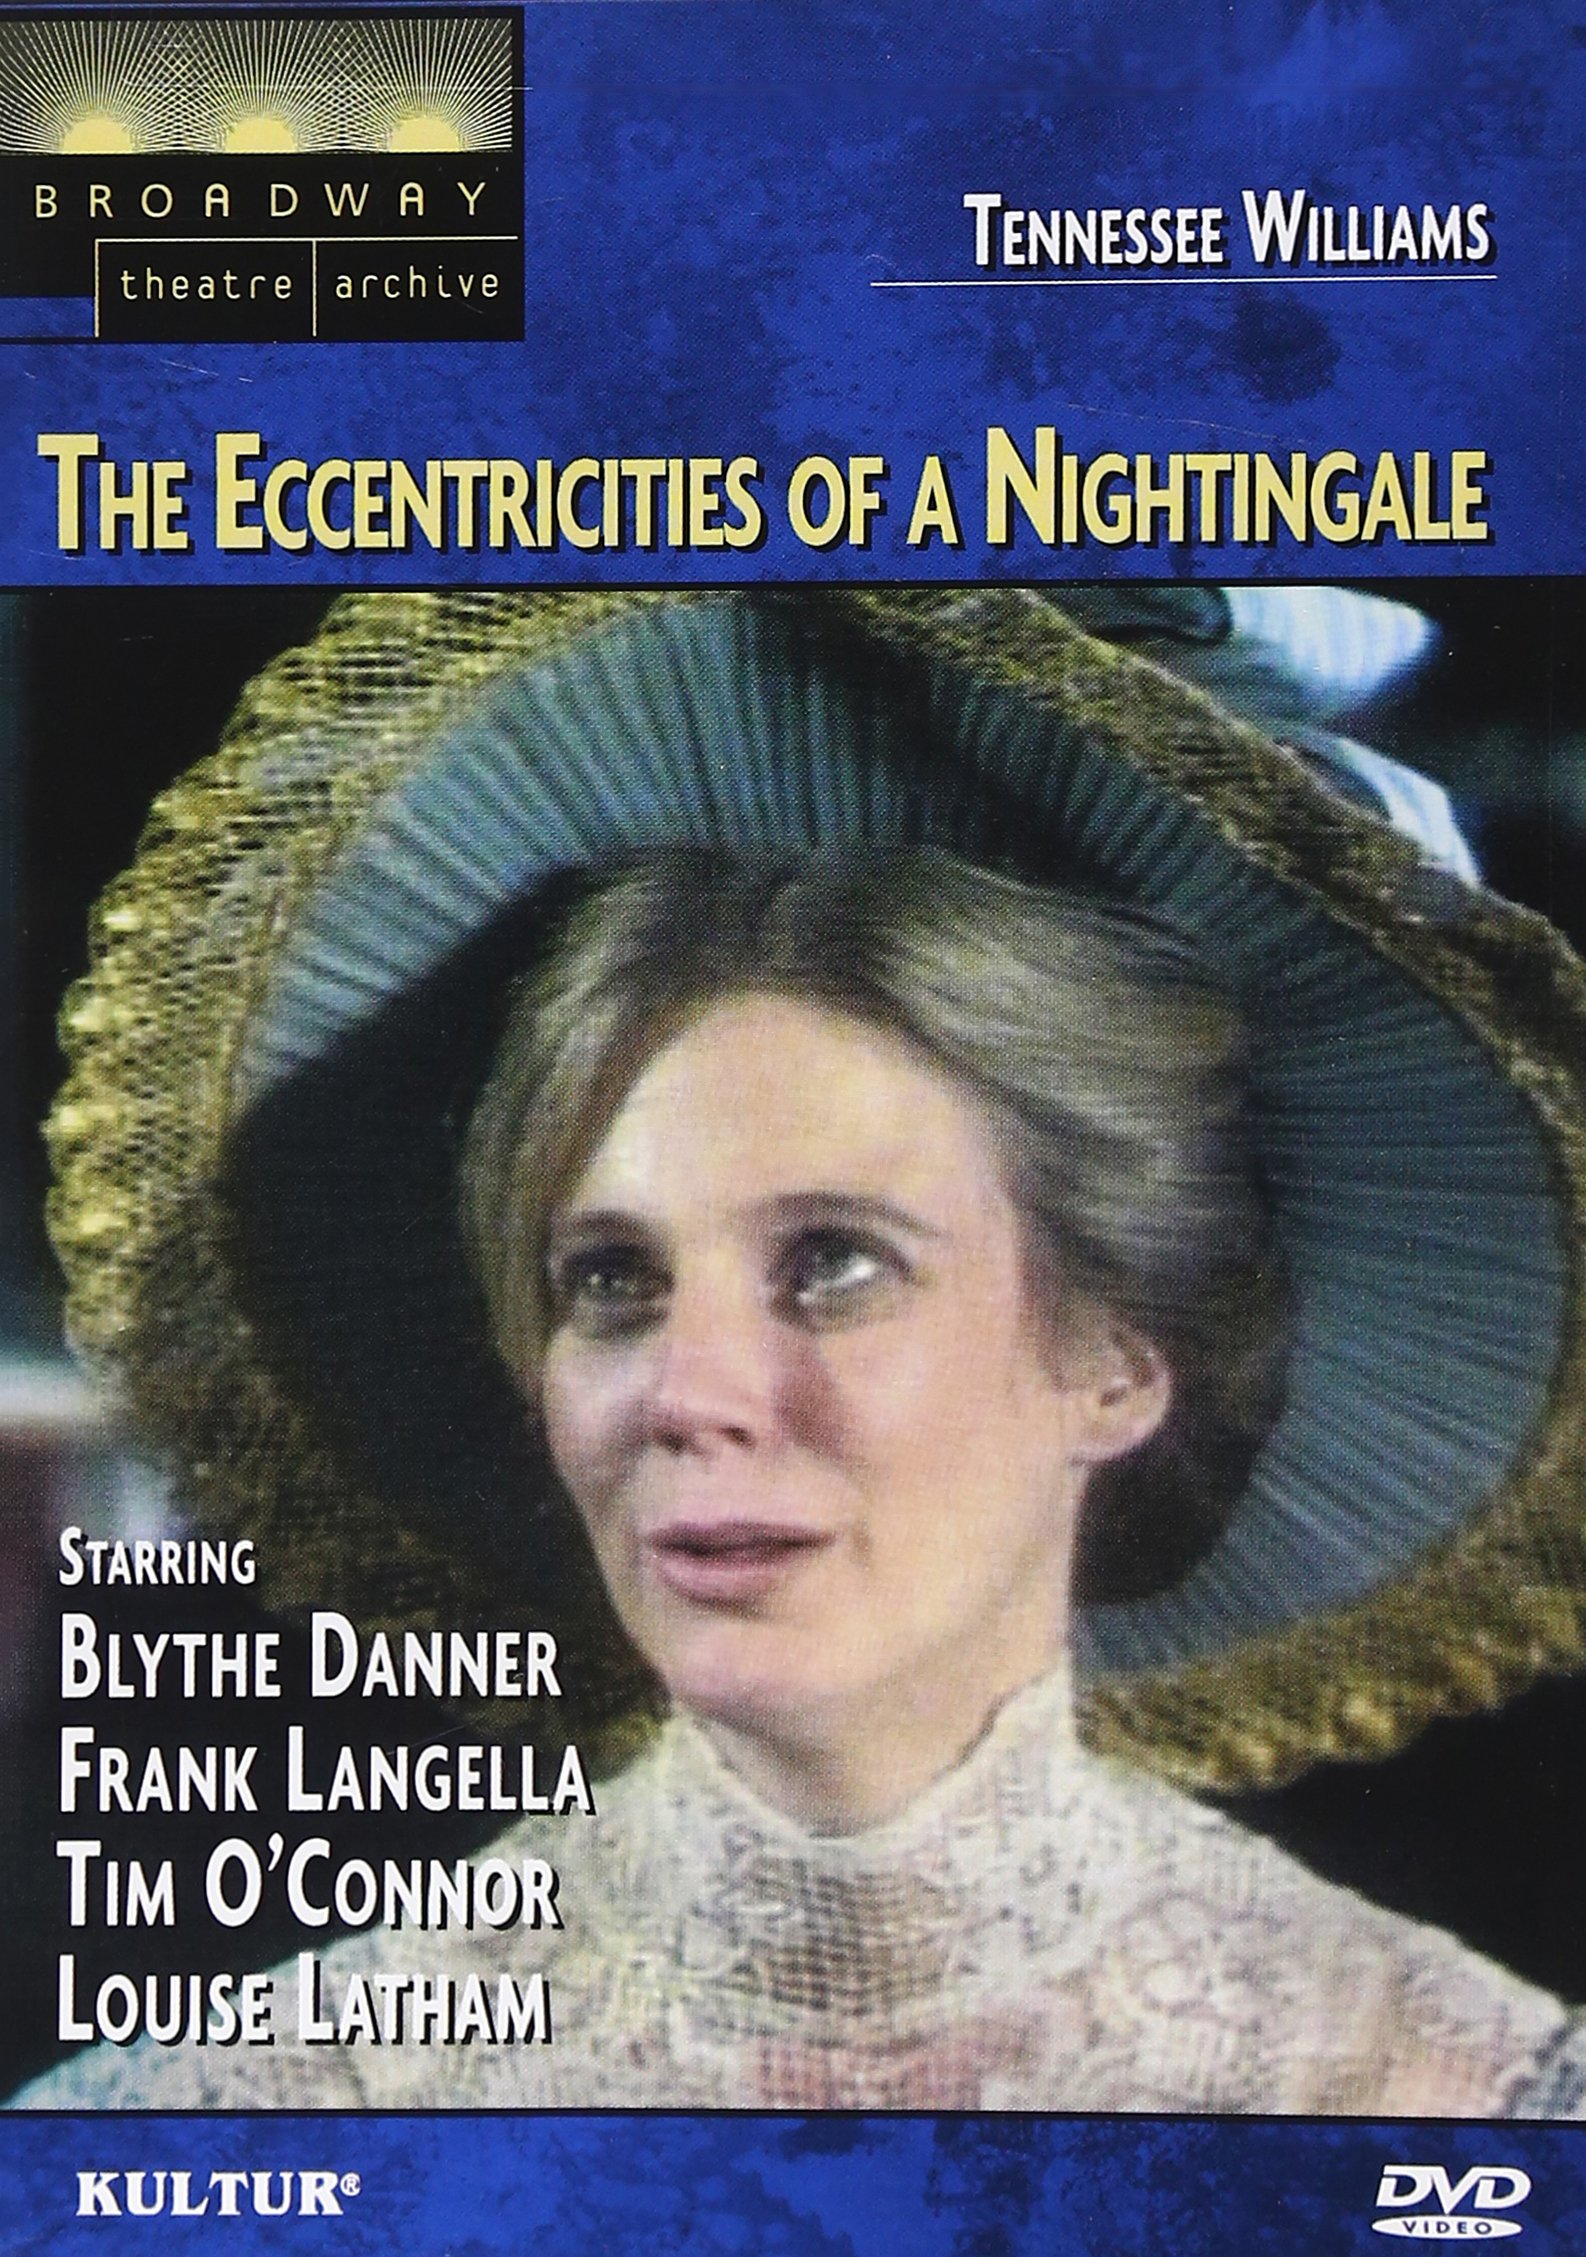 Eccentricities of a Nightingale (Broadway Theatre Archive)